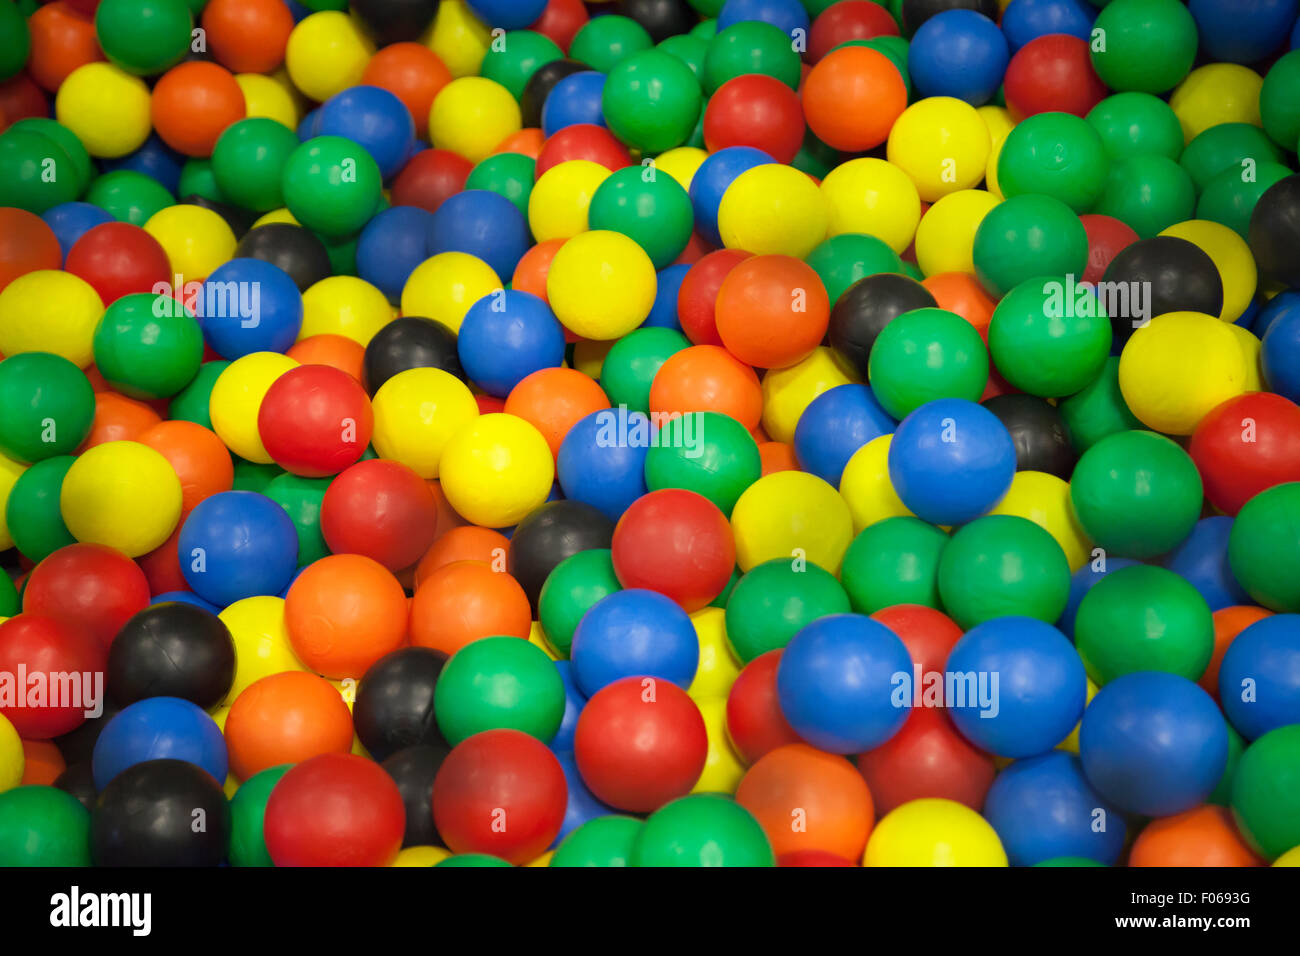 plastic play balls photos plastic play balls images alamy. Black Bedroom Furniture Sets. Home Design Ideas